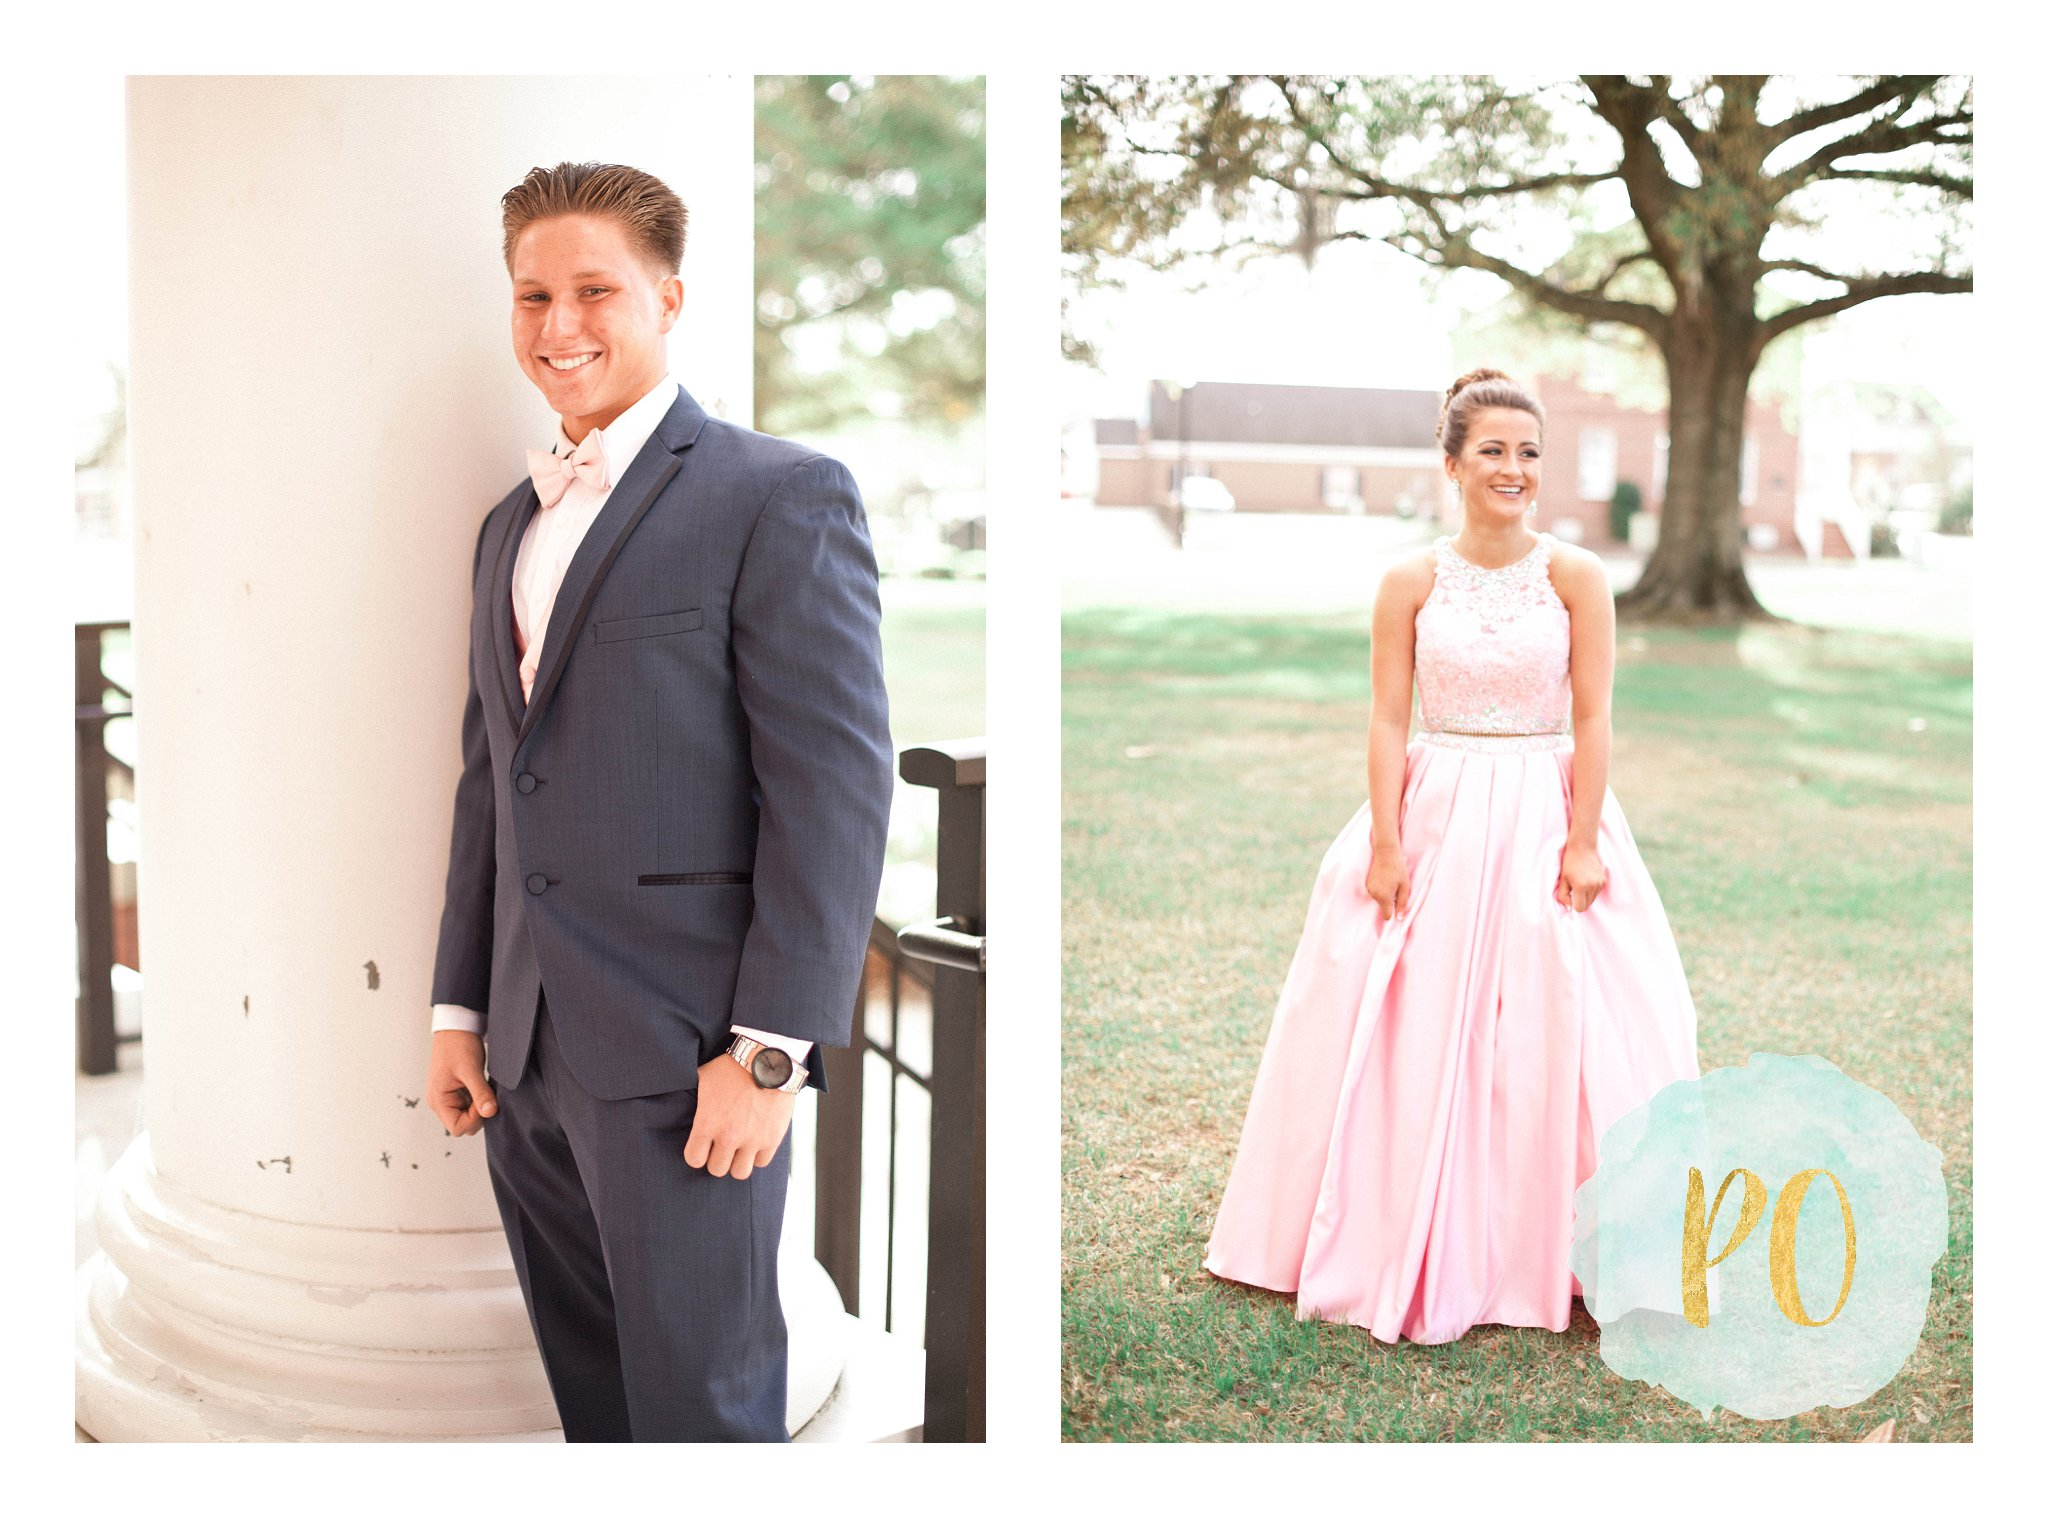 kylee_christian_prom_poured_out_photography-14_WEB.jpg